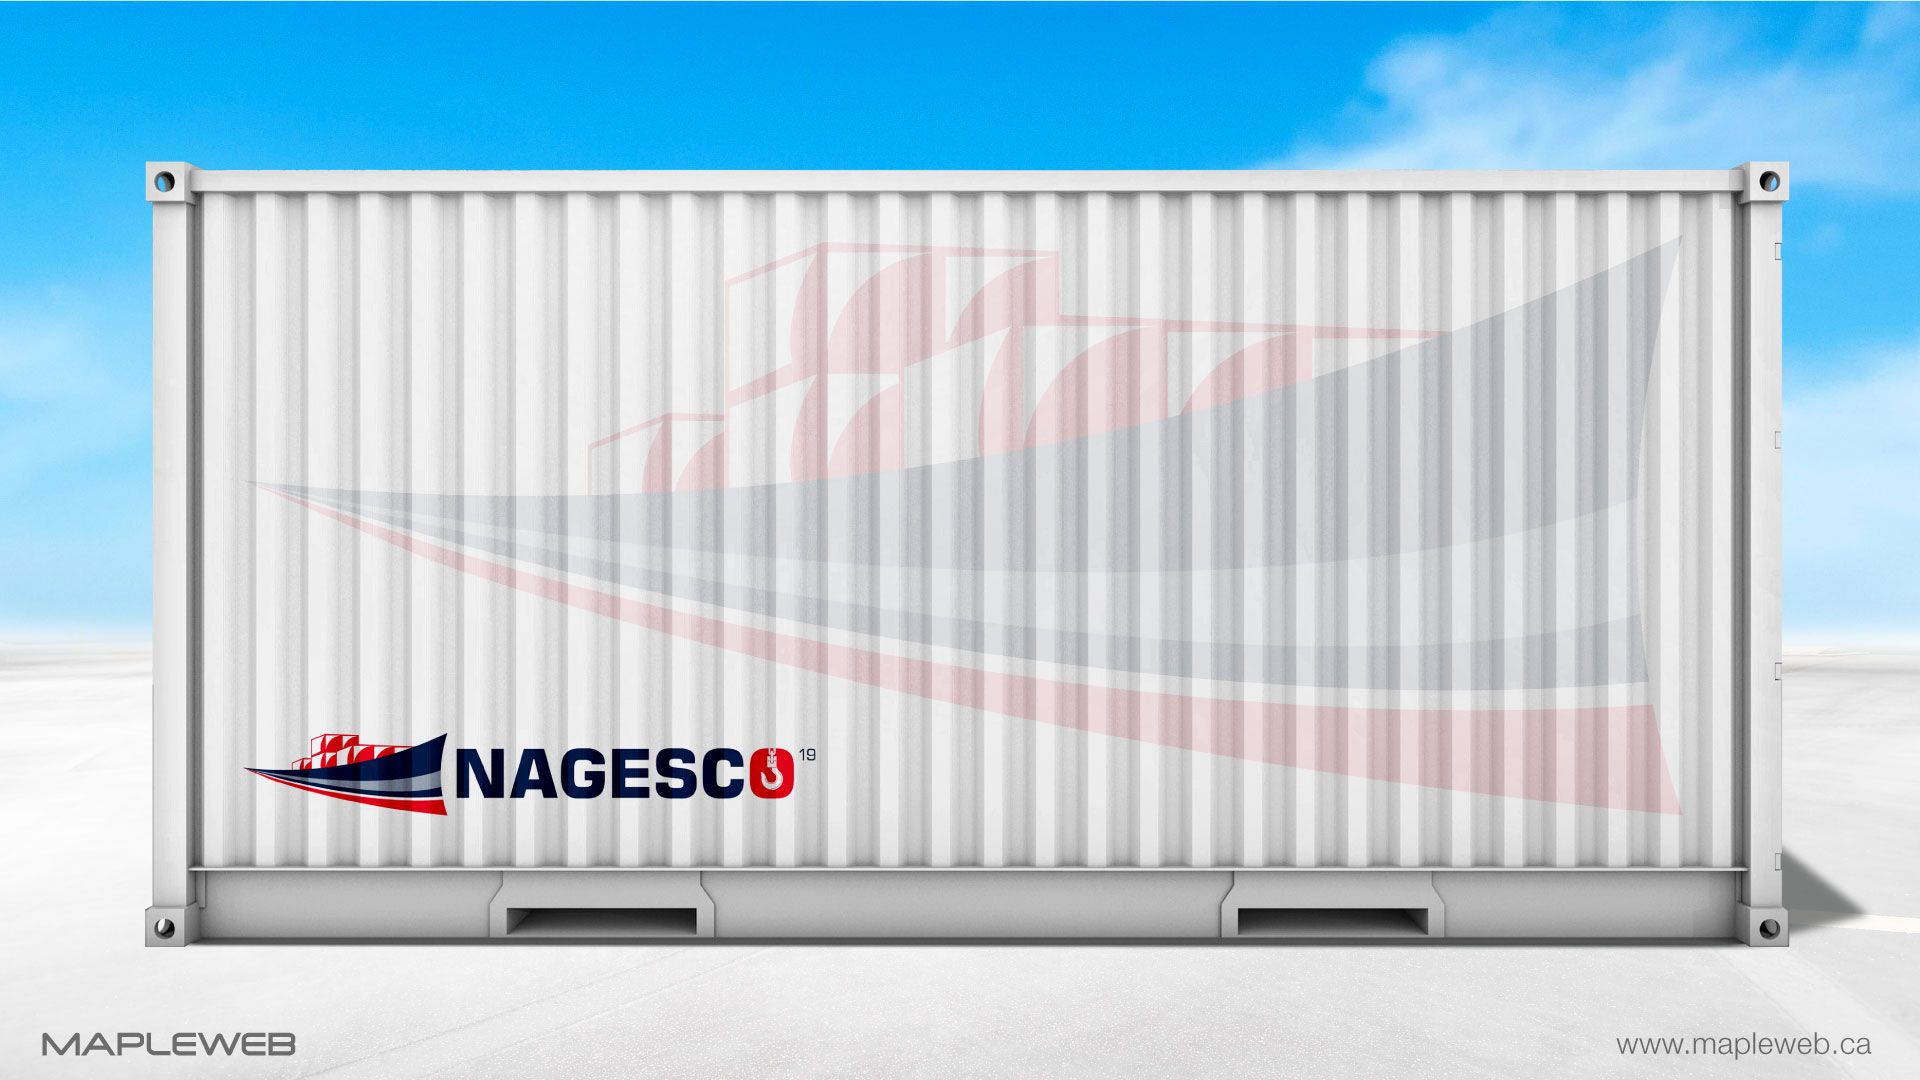 nagesco-brand-logo-design-by-mapleweb-vancouver-canada-banners-mock